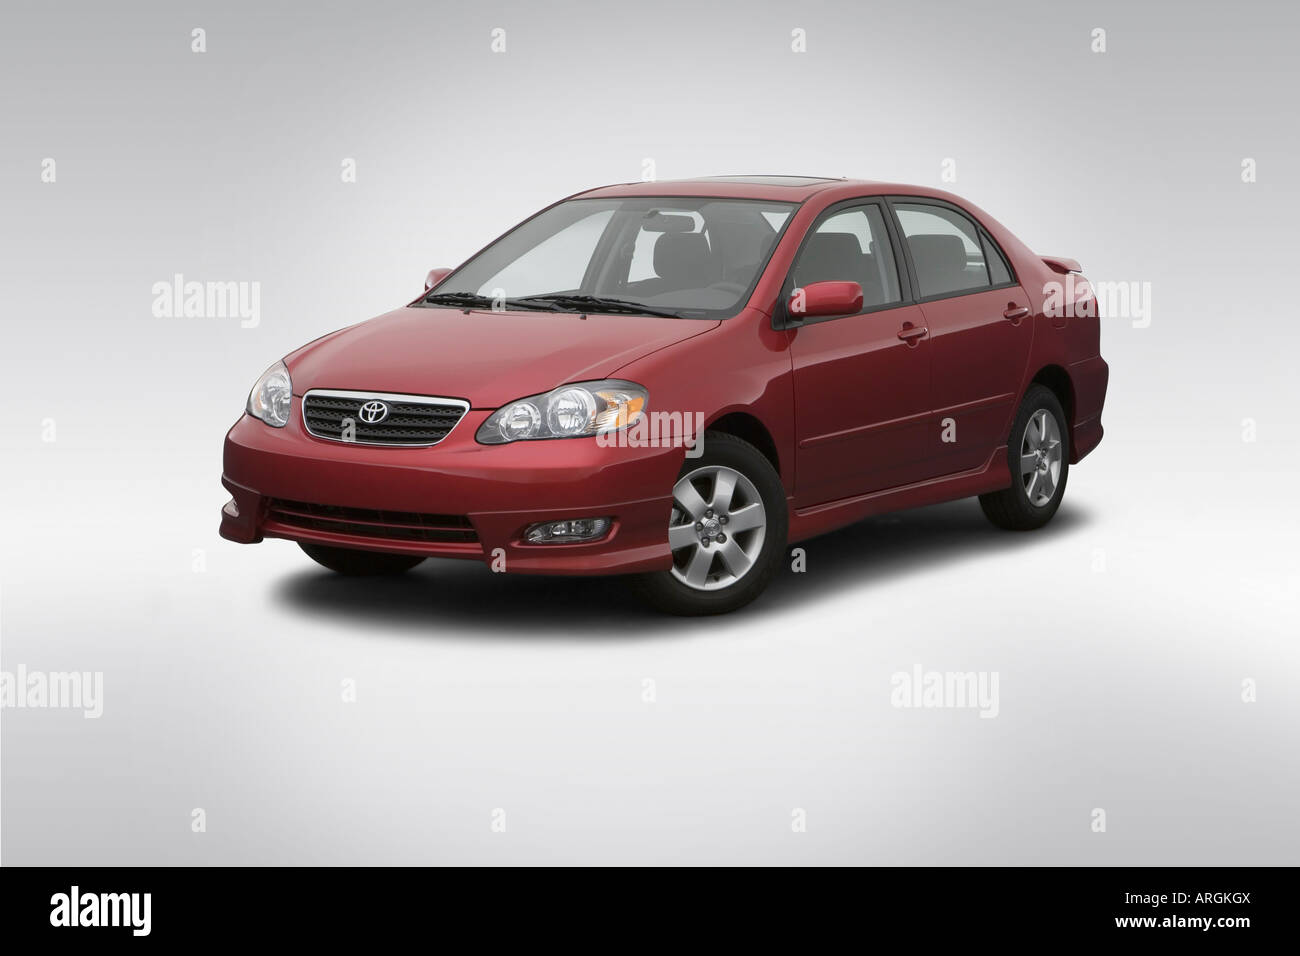 2007 Toyota Corolla S In Red Front Angle View Stock Photo Alamy